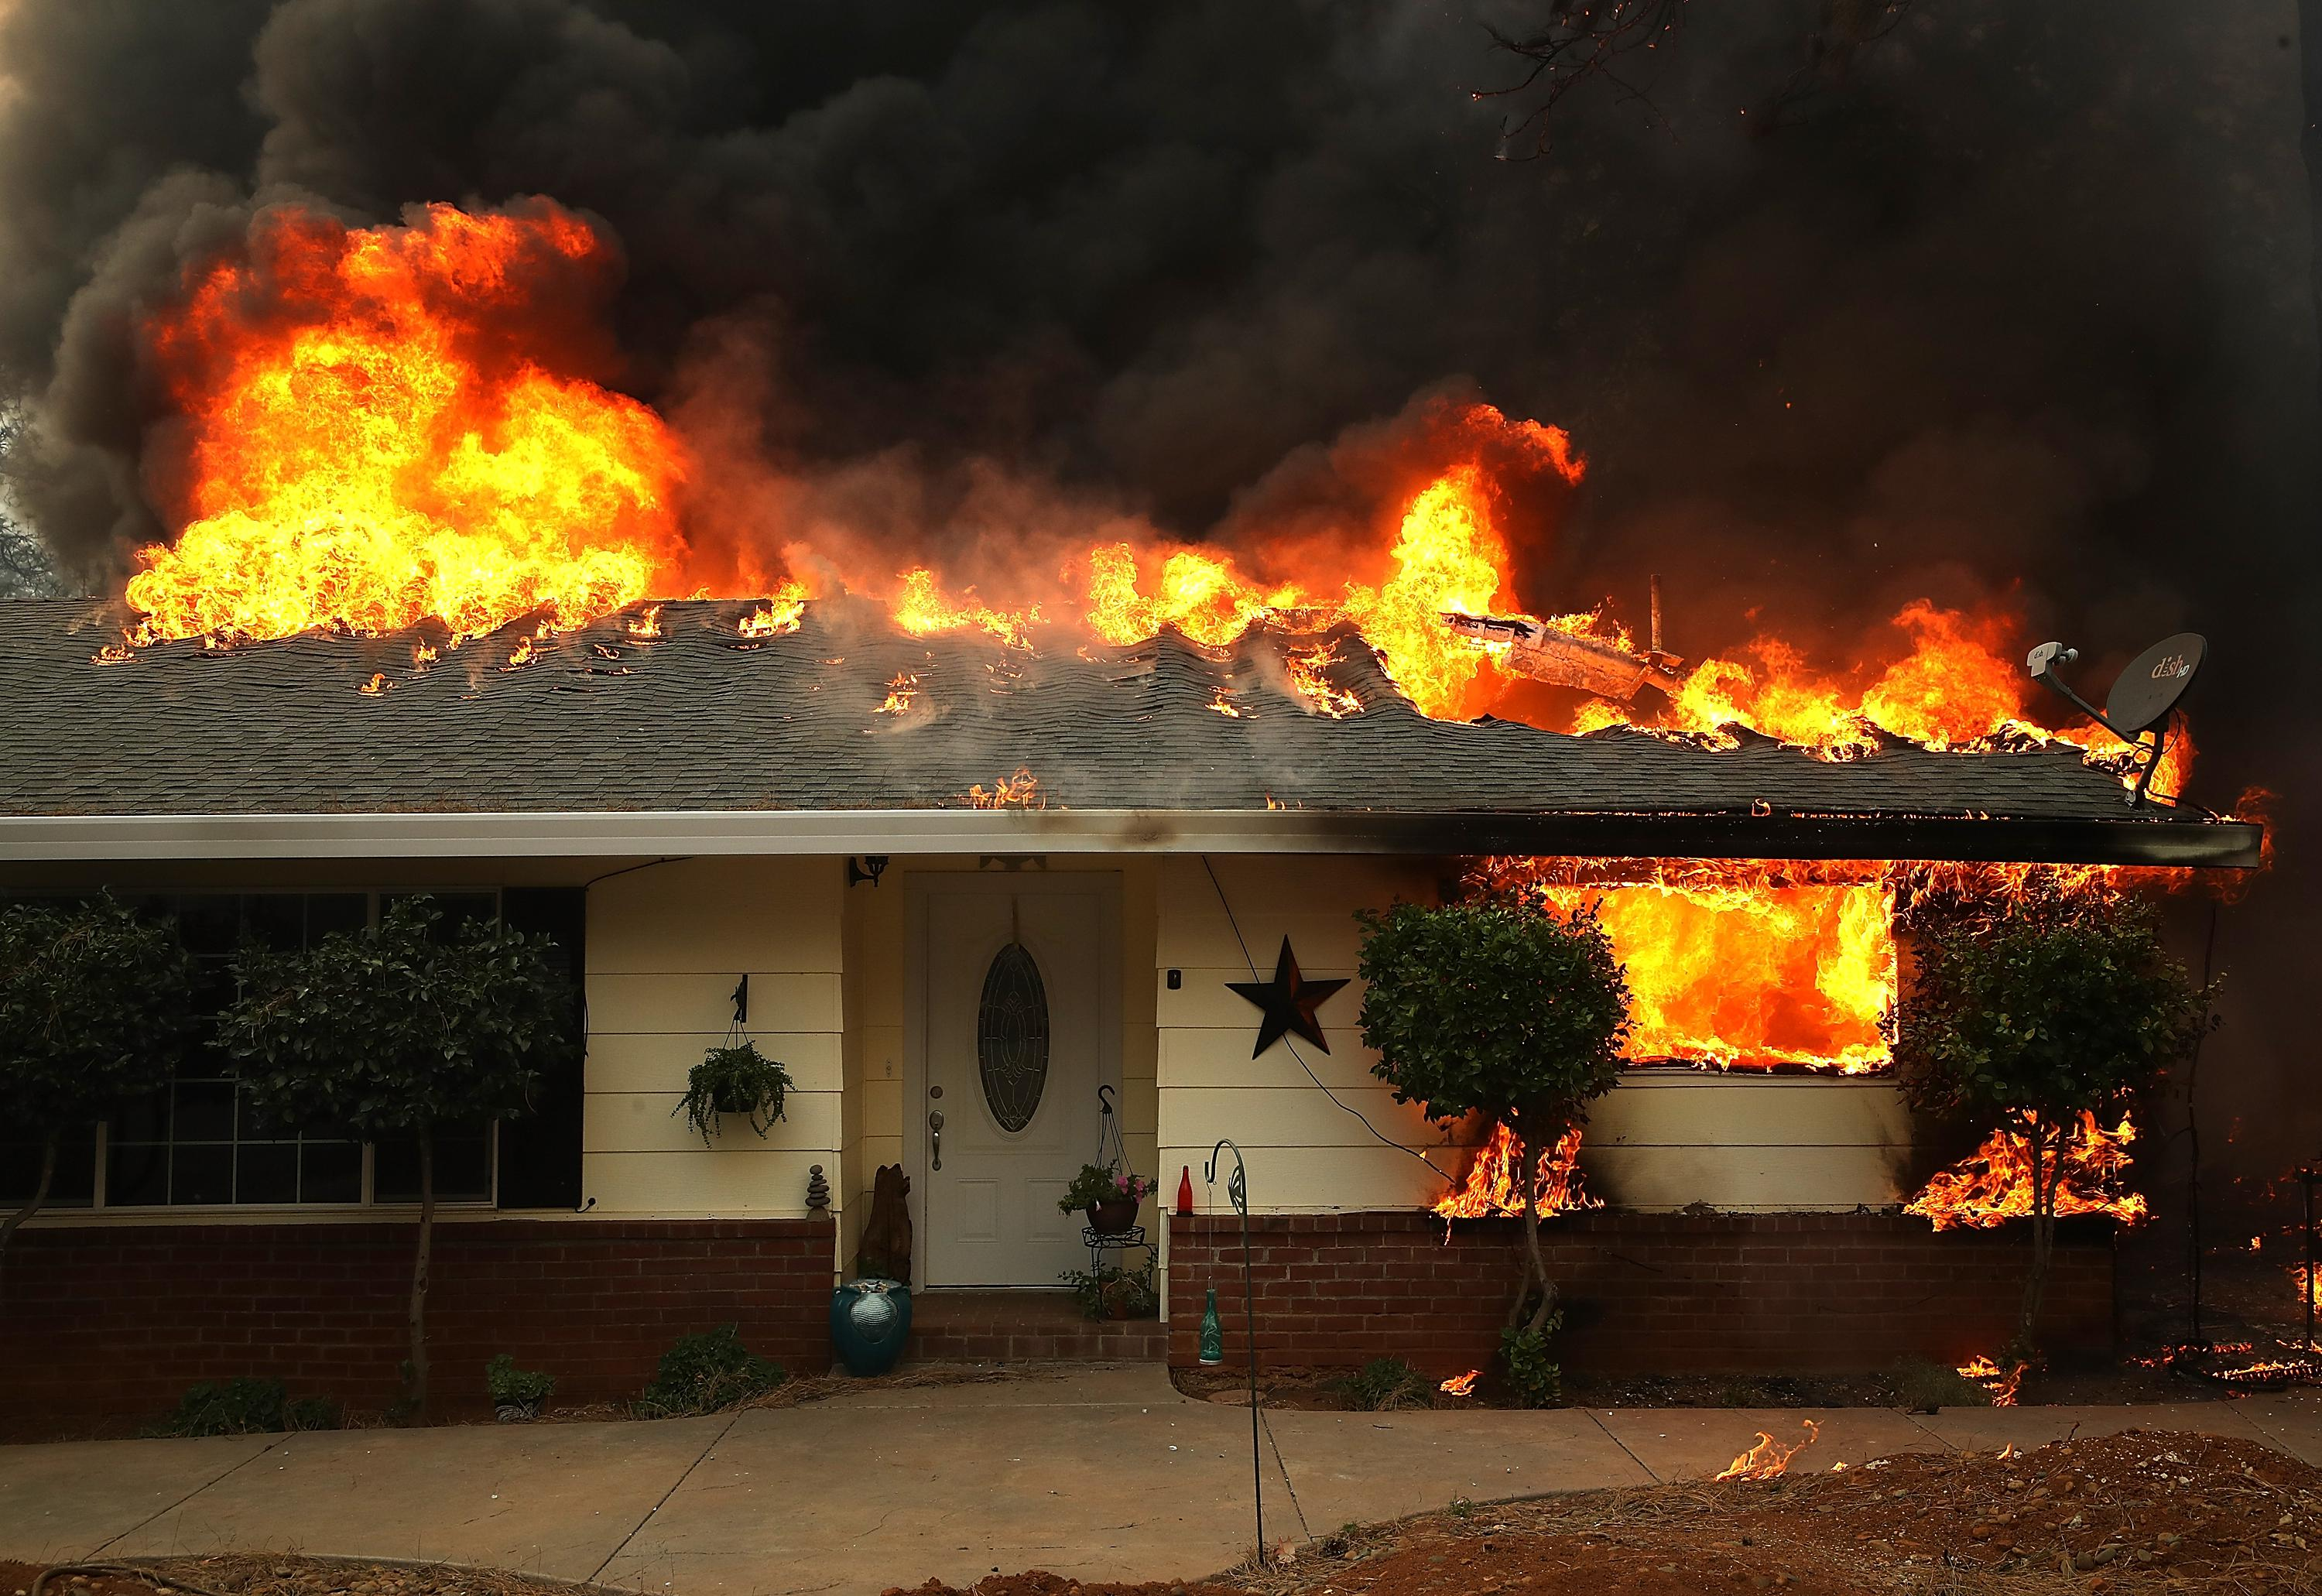 A home on fire.